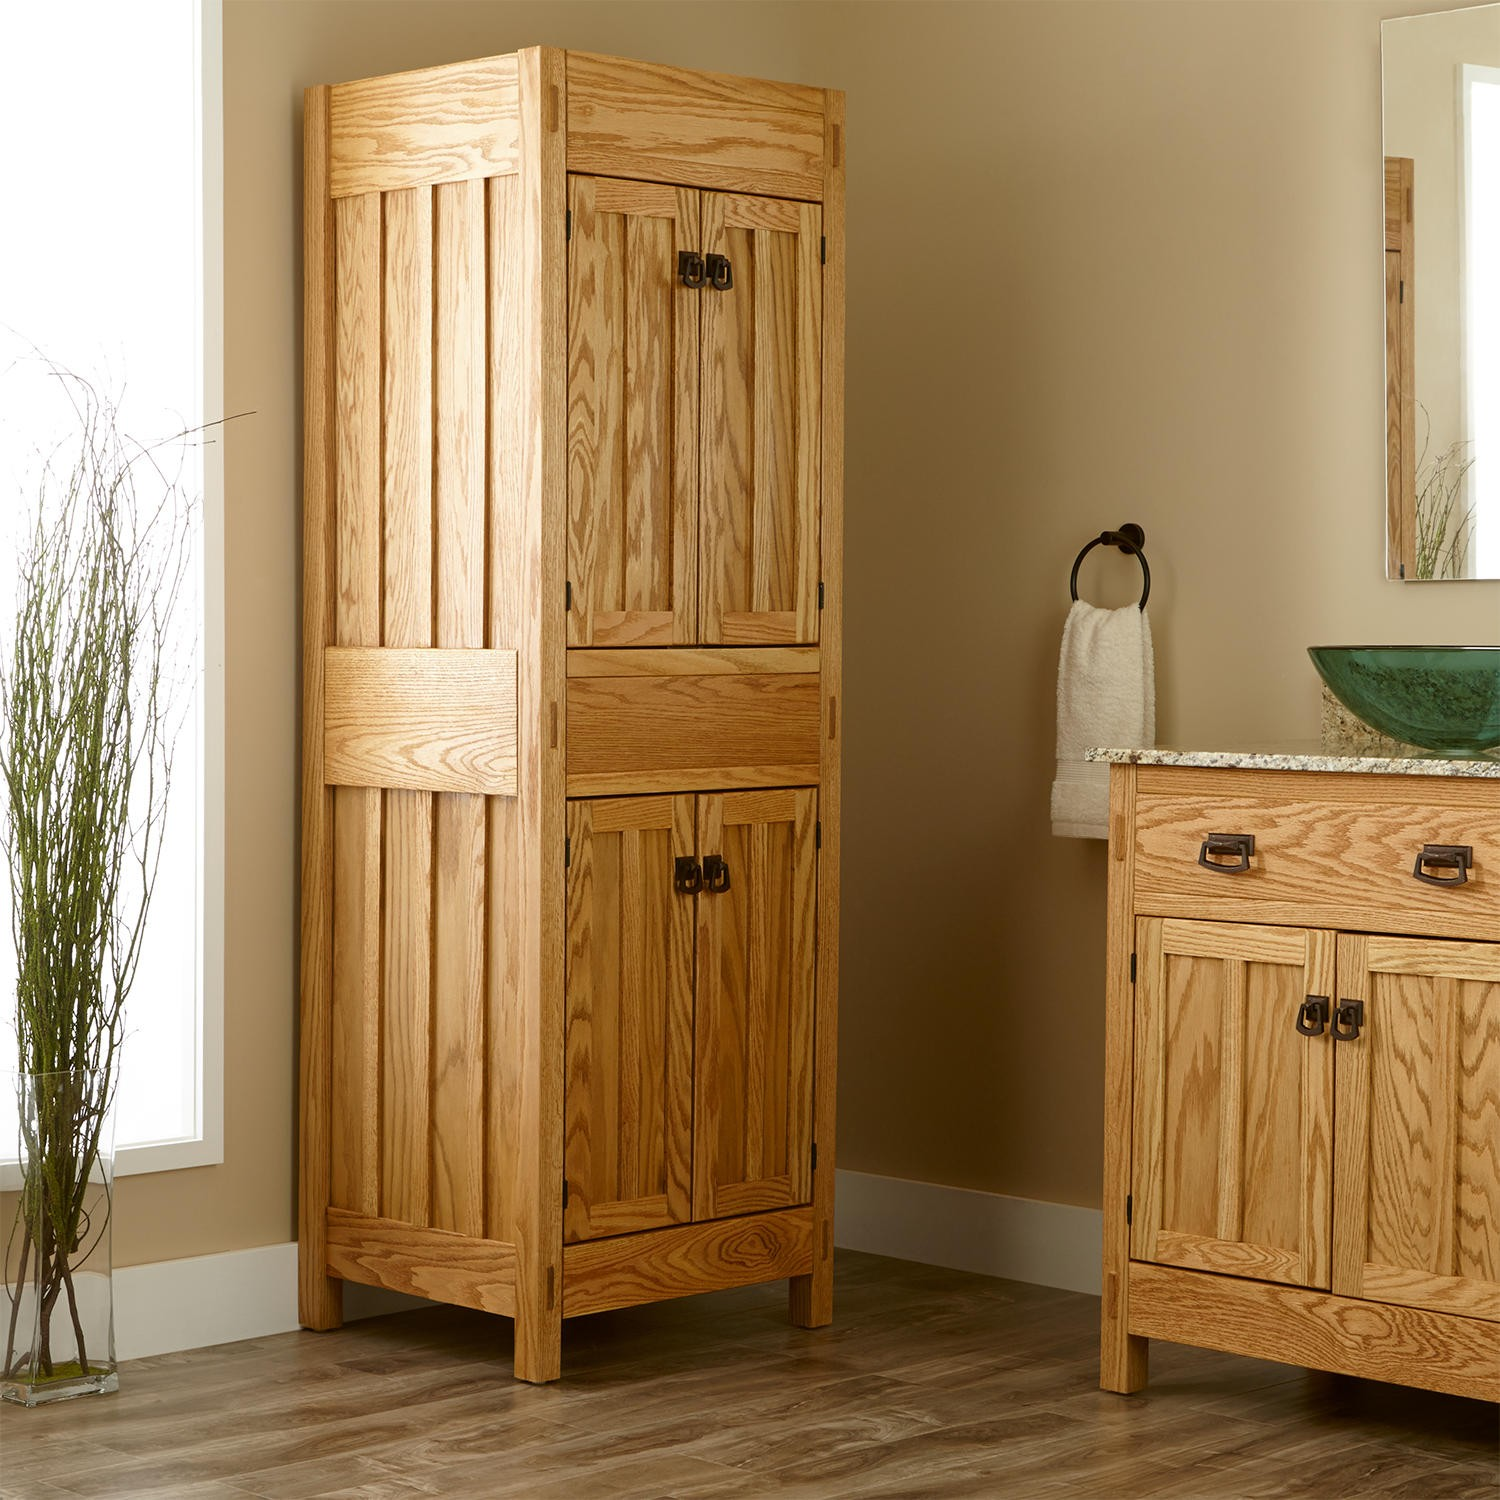 Natural Look Of Wooden Free Standing Linen Closet And Cabinet With Green Gl Sink